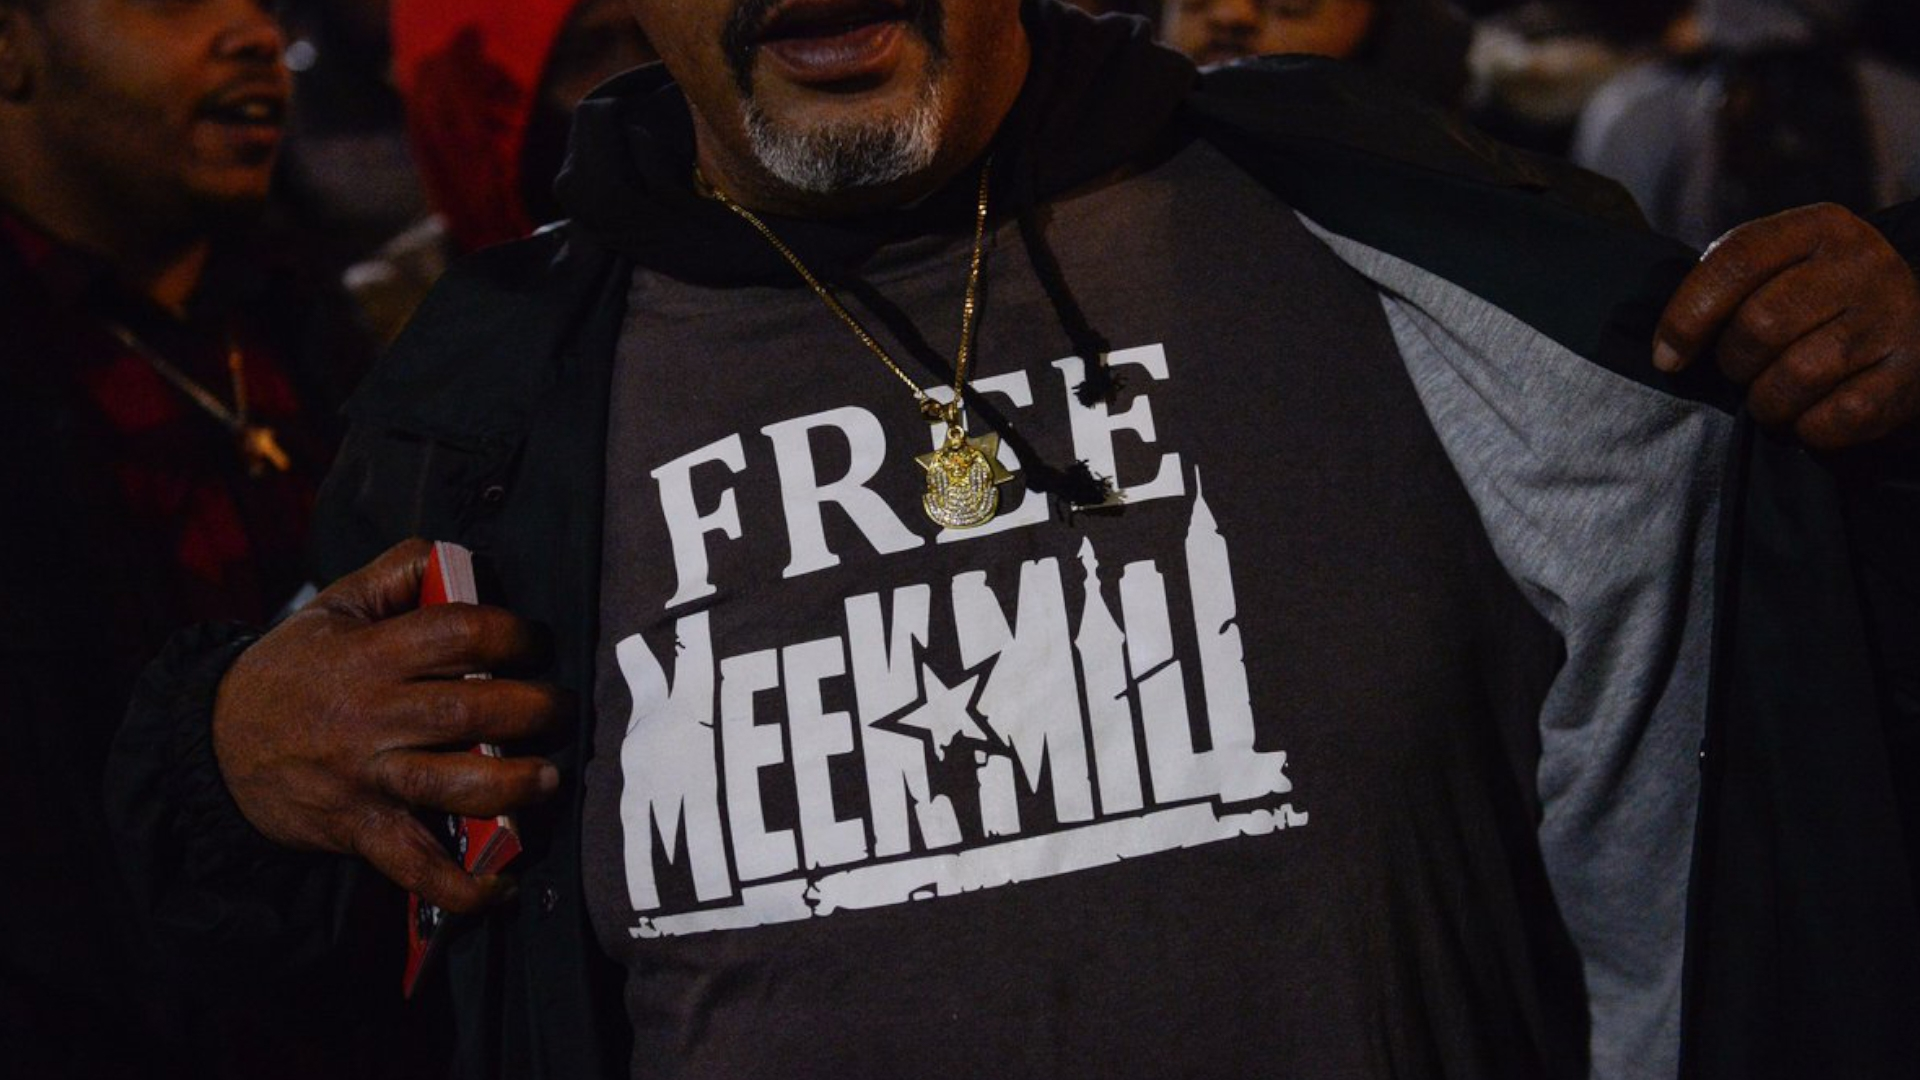 680d74a8b8d0 Meek Mill rally was about way more than the Philadelphia rapper